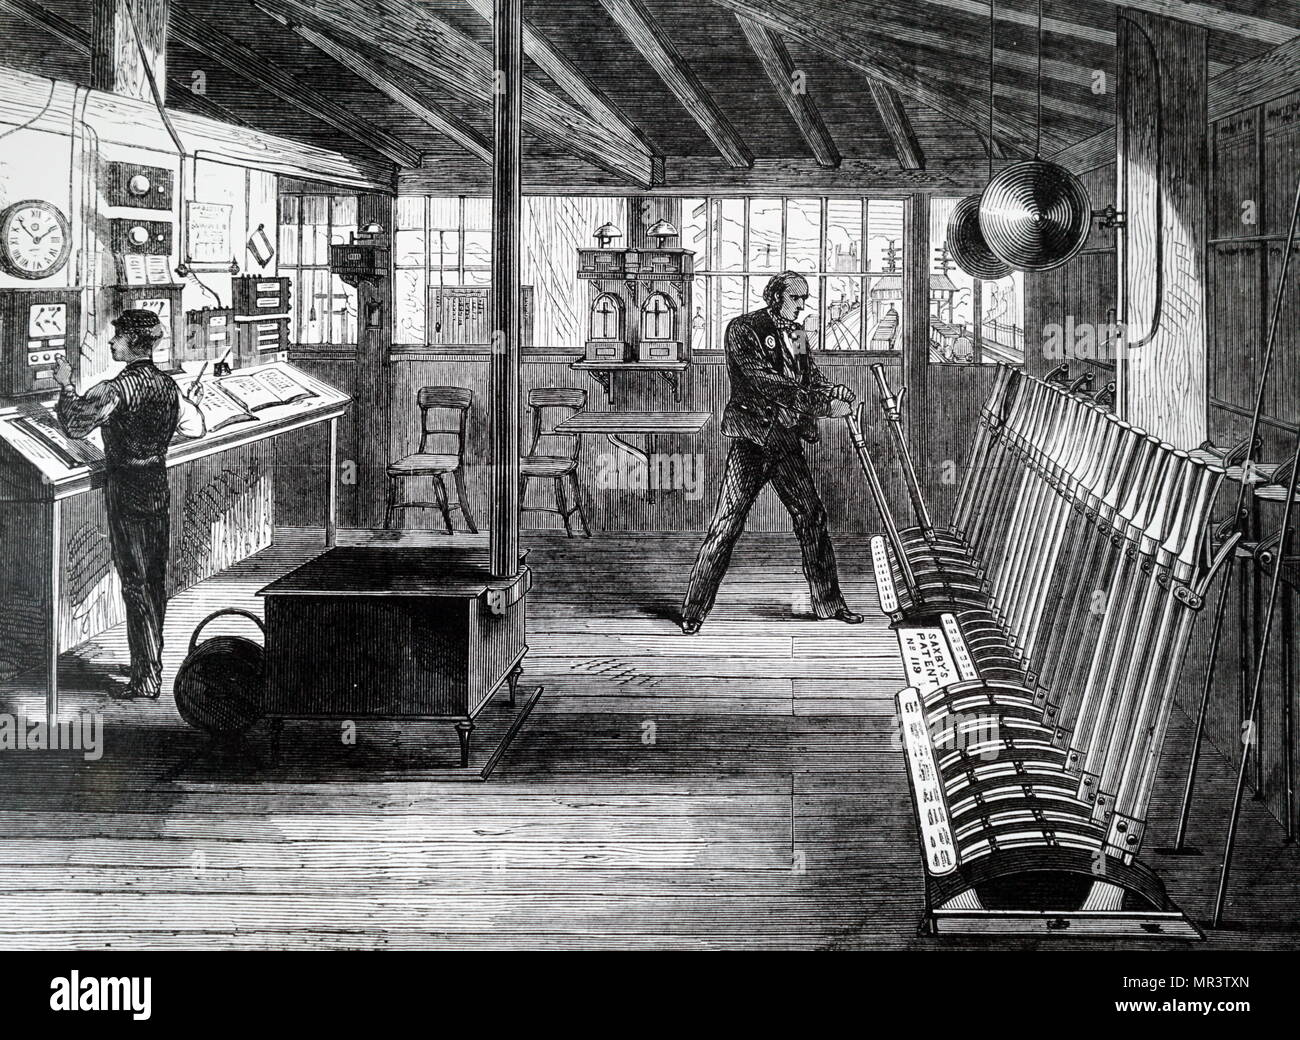 Illustration depicting a signal box, used to communicate with trains and other signal boxes, at London Bridge Station. Dated 19th century - Stock Image